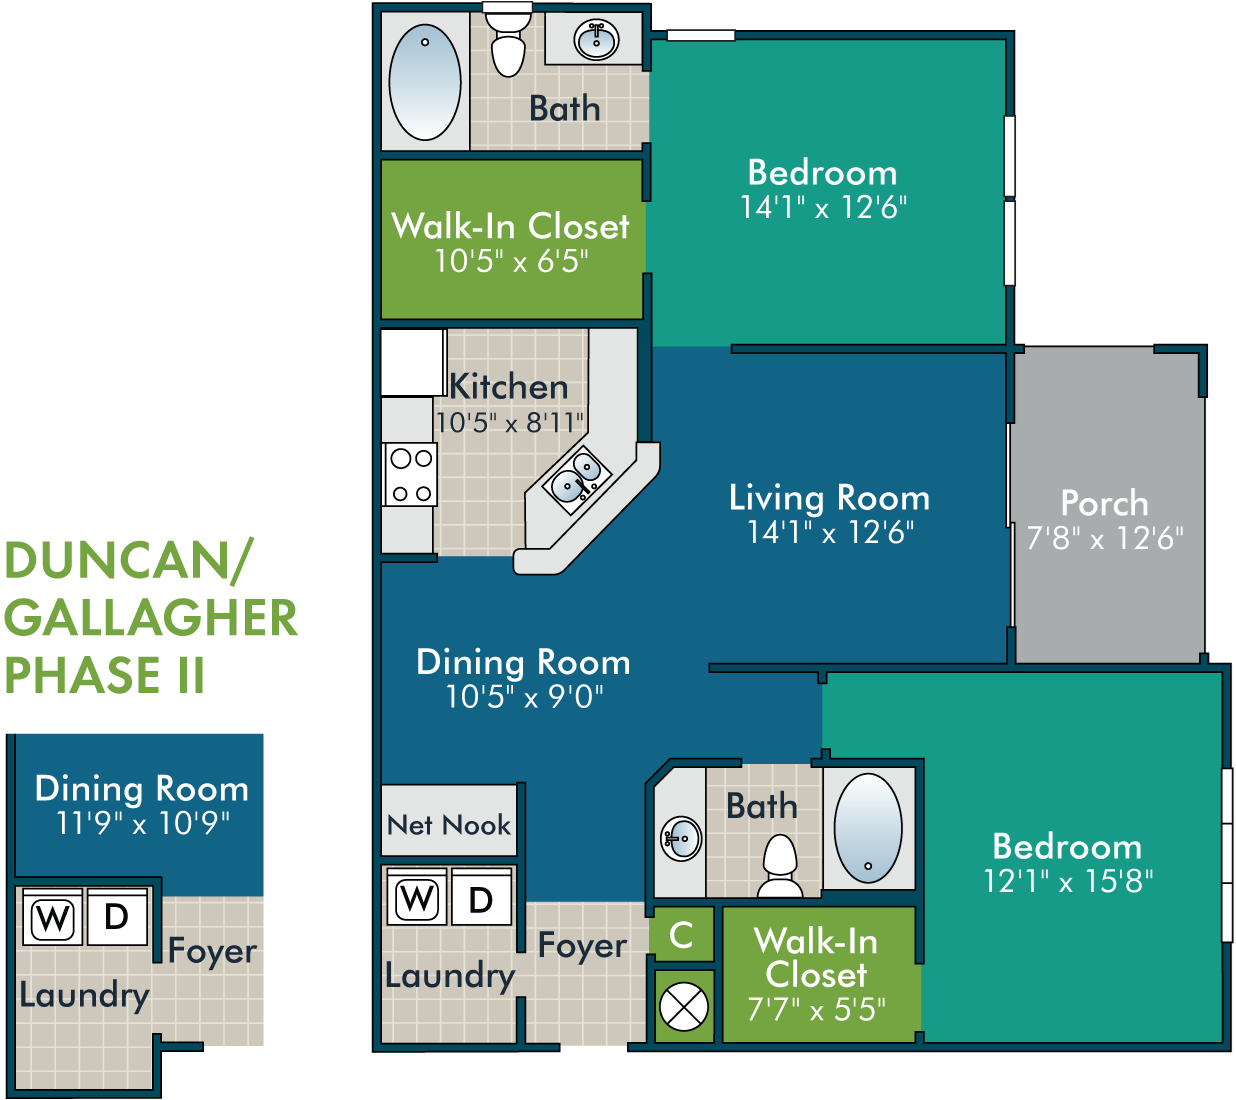 Duncan-Gallagher_2BR2BA Floor Plan at Abberly Green Apartment Homes by HHHunt, North Carolina